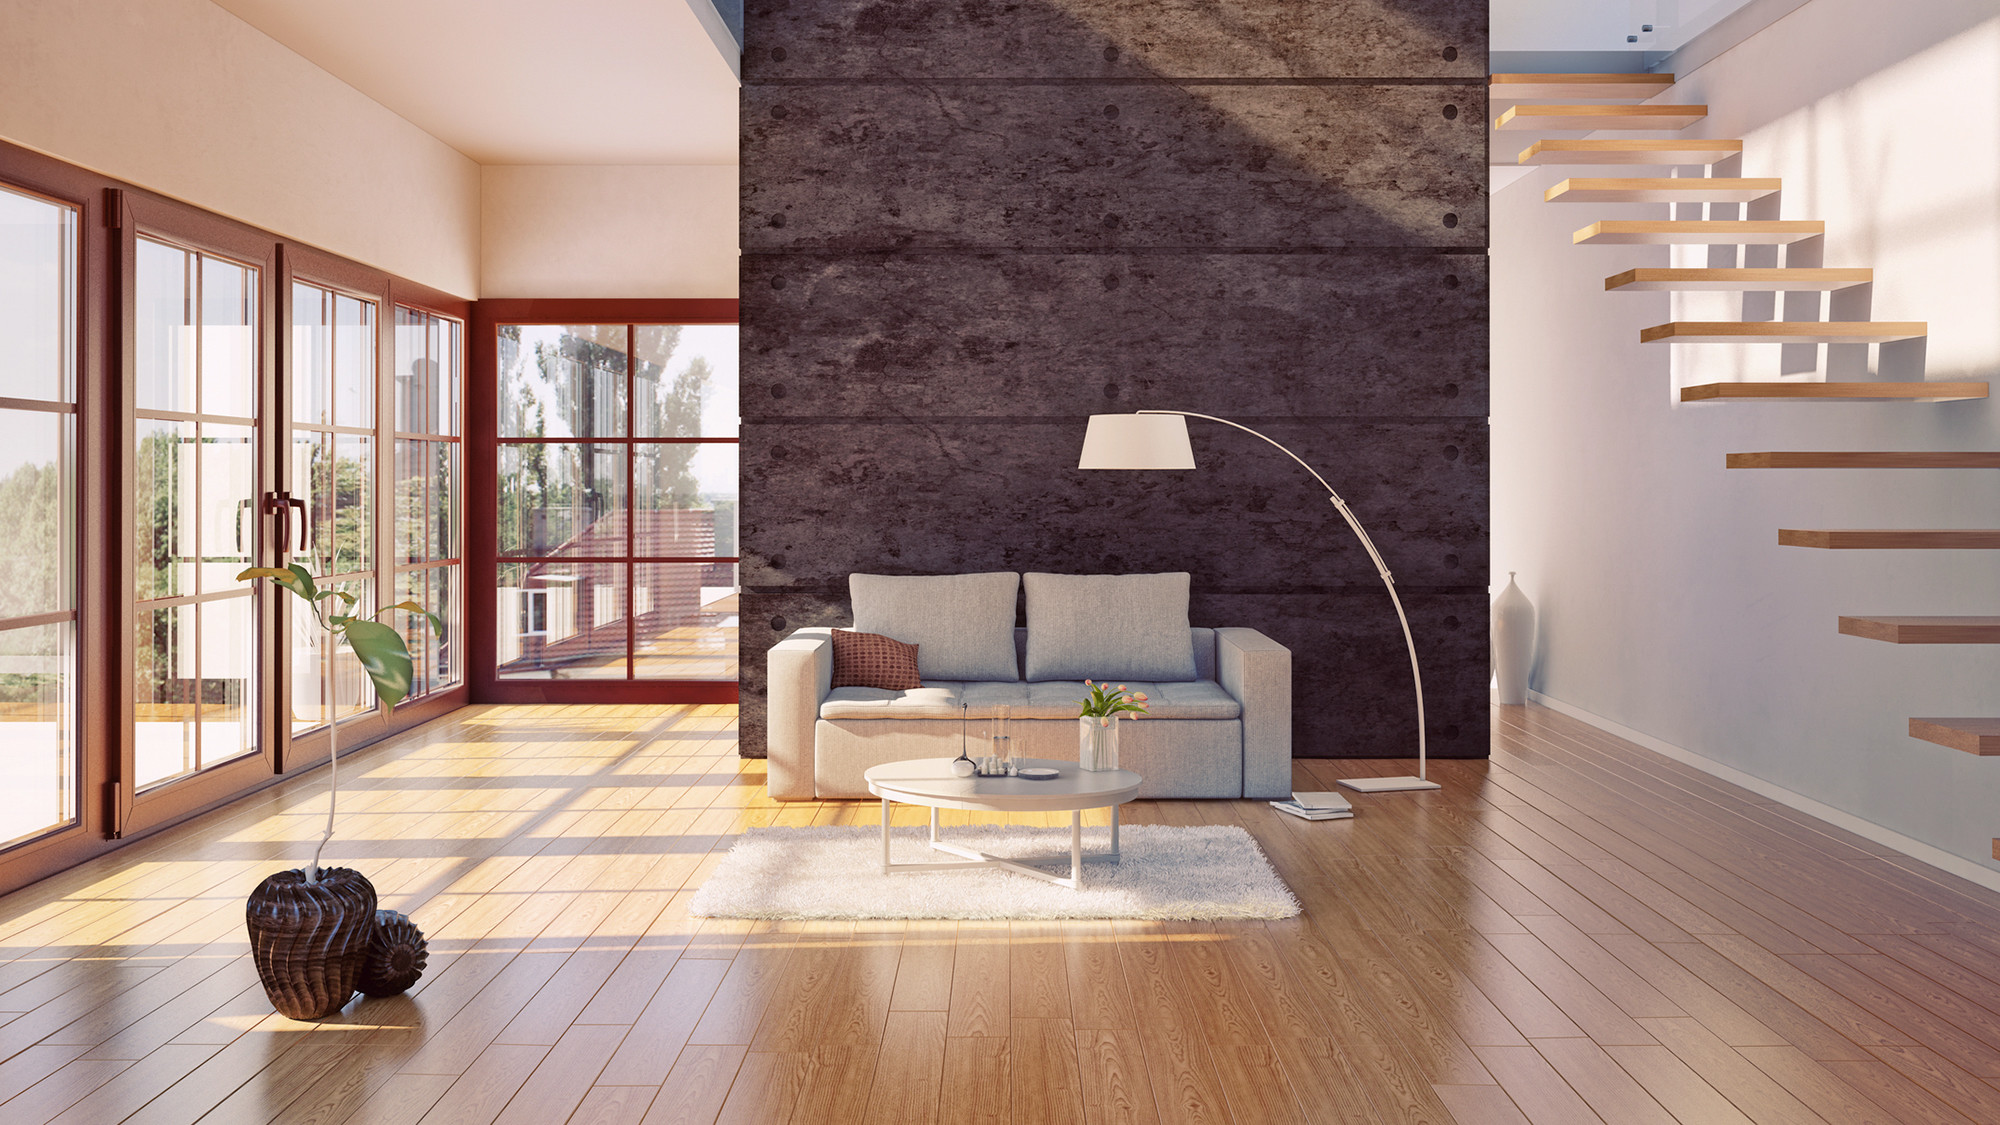 hardwood floor price per square foot of do hardwood floors provide the best return on investment realtor coma regarding hardwood floors investment